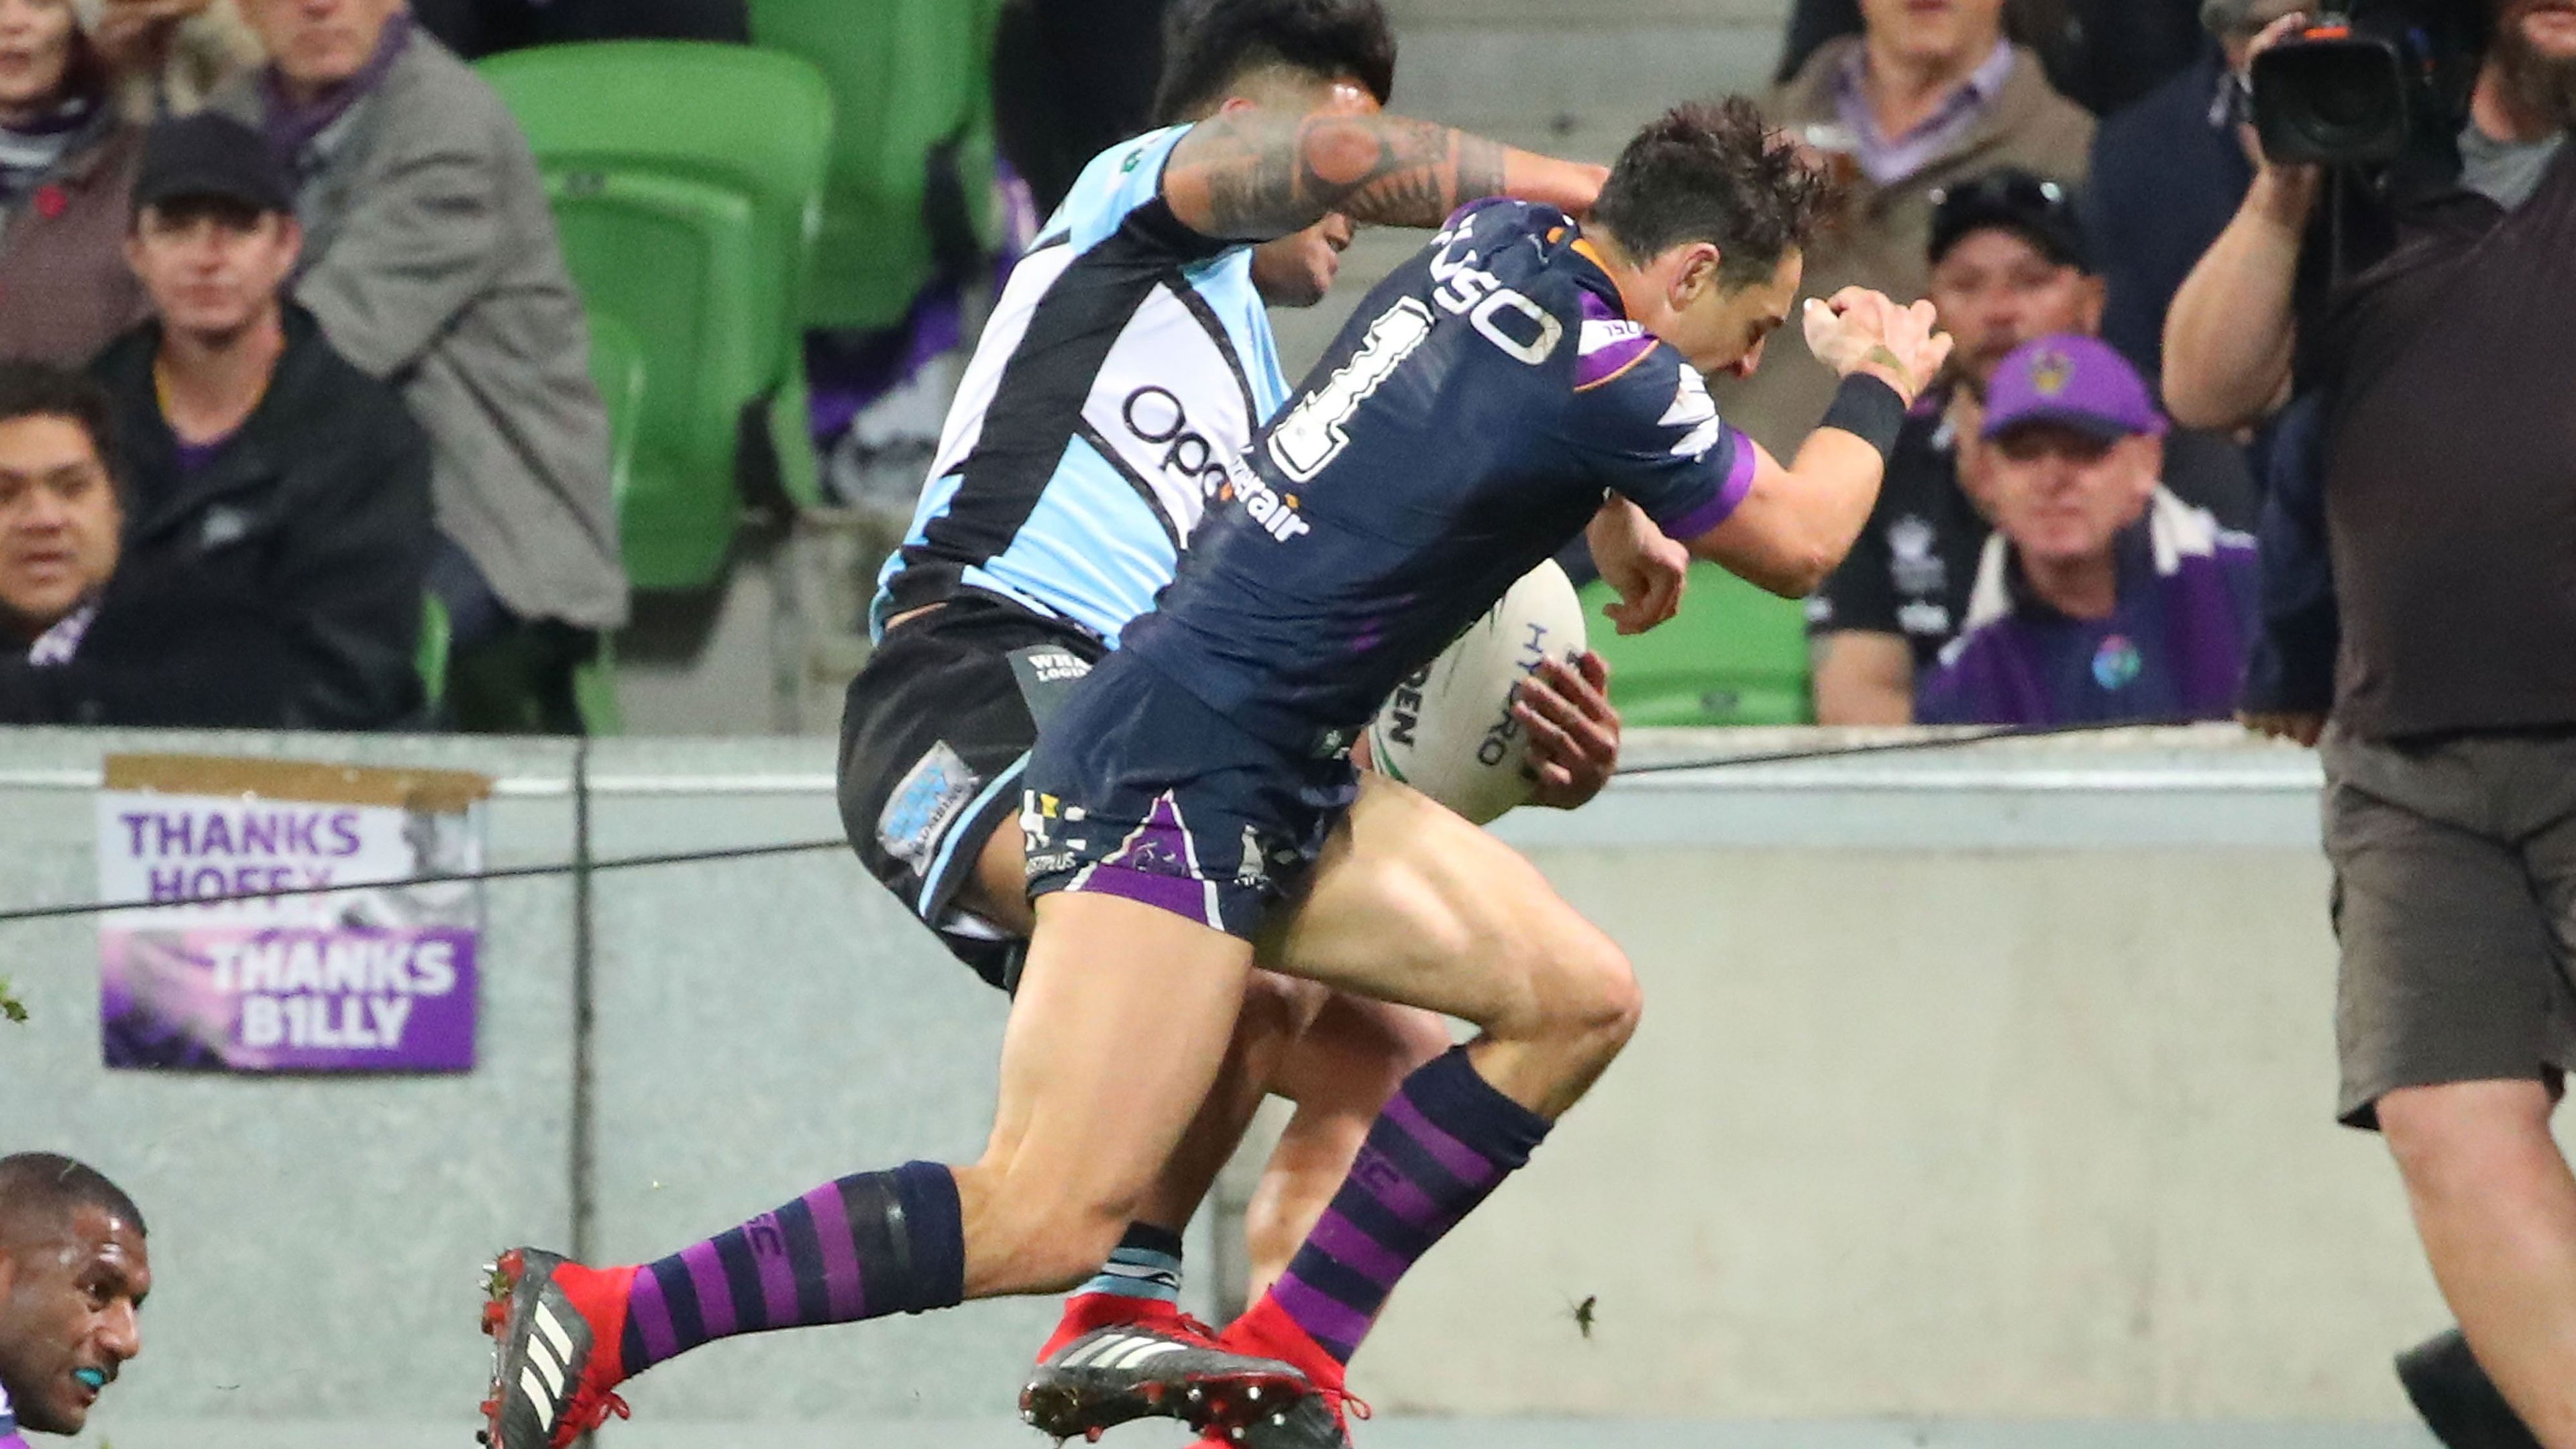 Andrew Johns and Johnathan Thurston expect Billy Slater to face shoulder charge ban